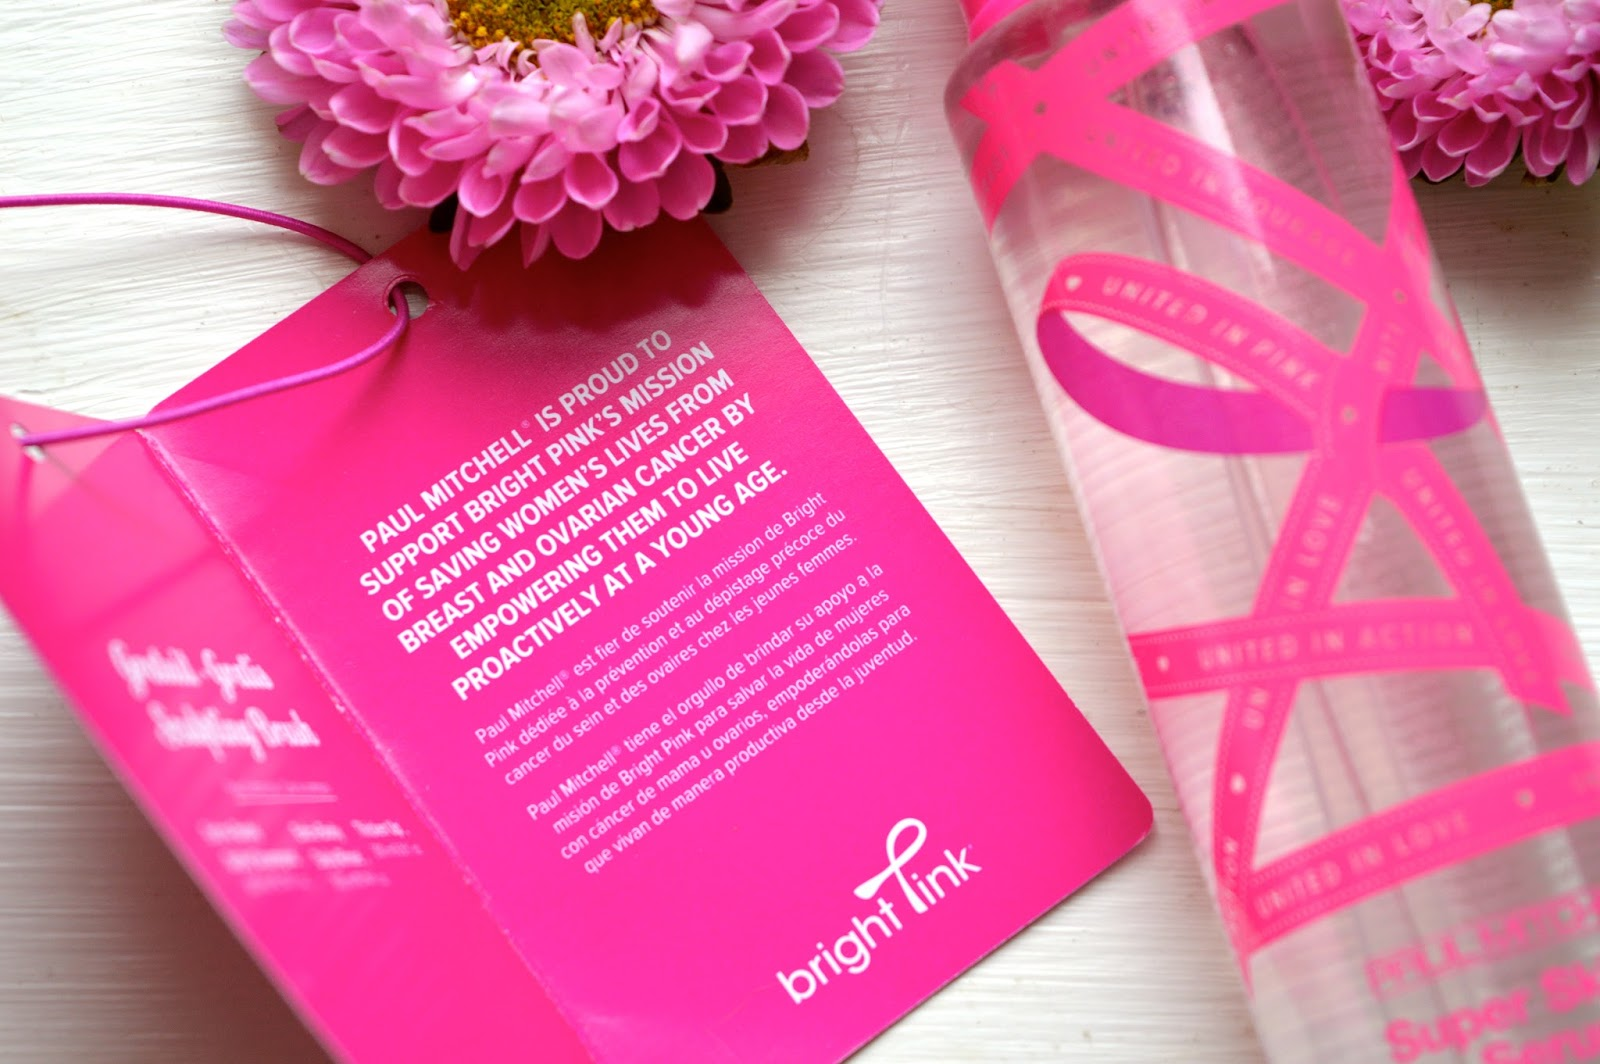 Paul Mitchell United in Pink, beauty bloggers, Hampshire bloggers, Dalry Rose Blog, tips on how to spot cancer